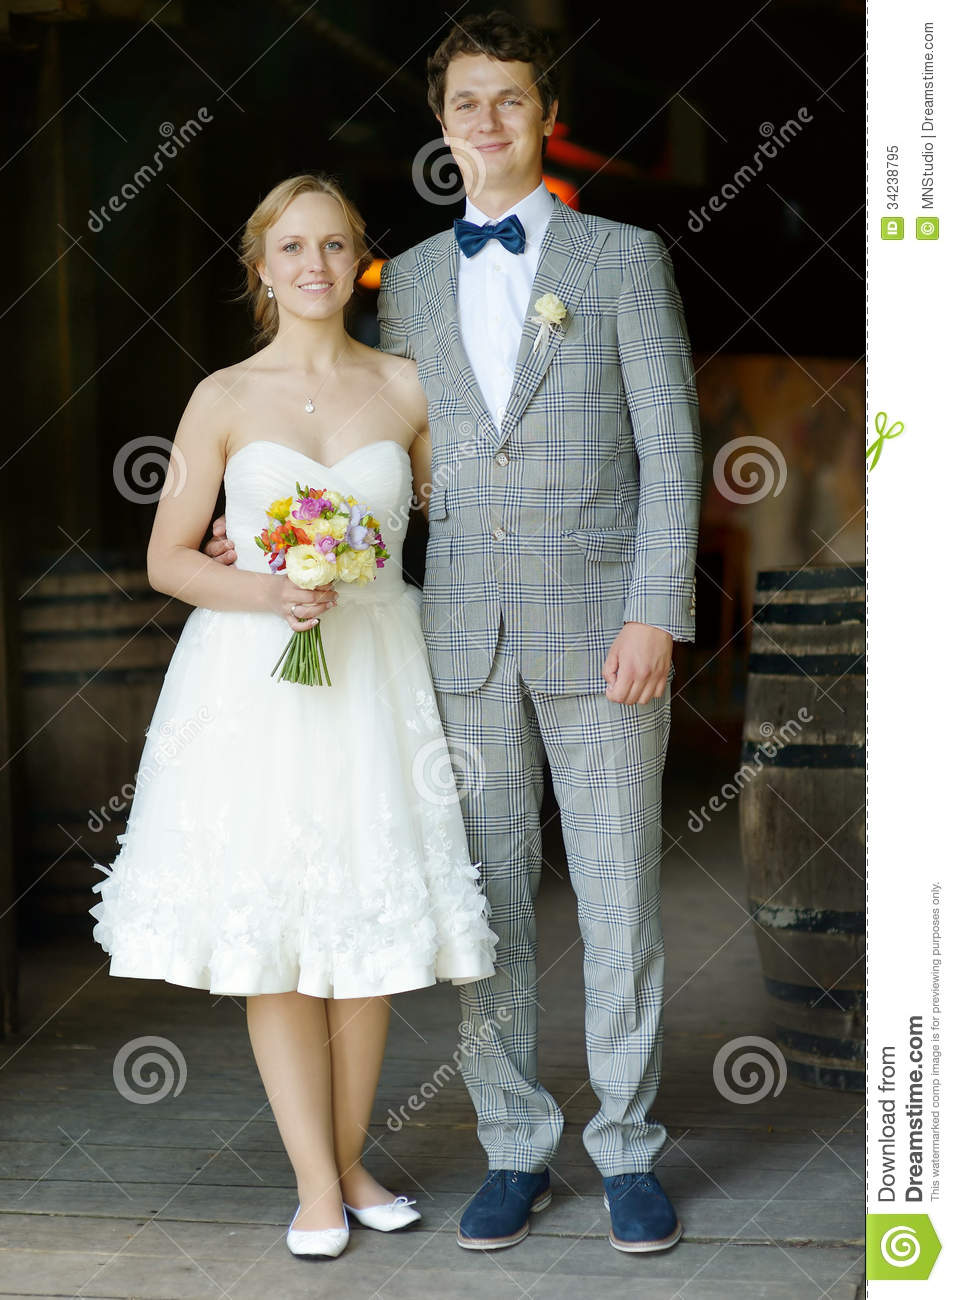 Indoor Portrait Of A Beautiful Bride And Groom Stock Image